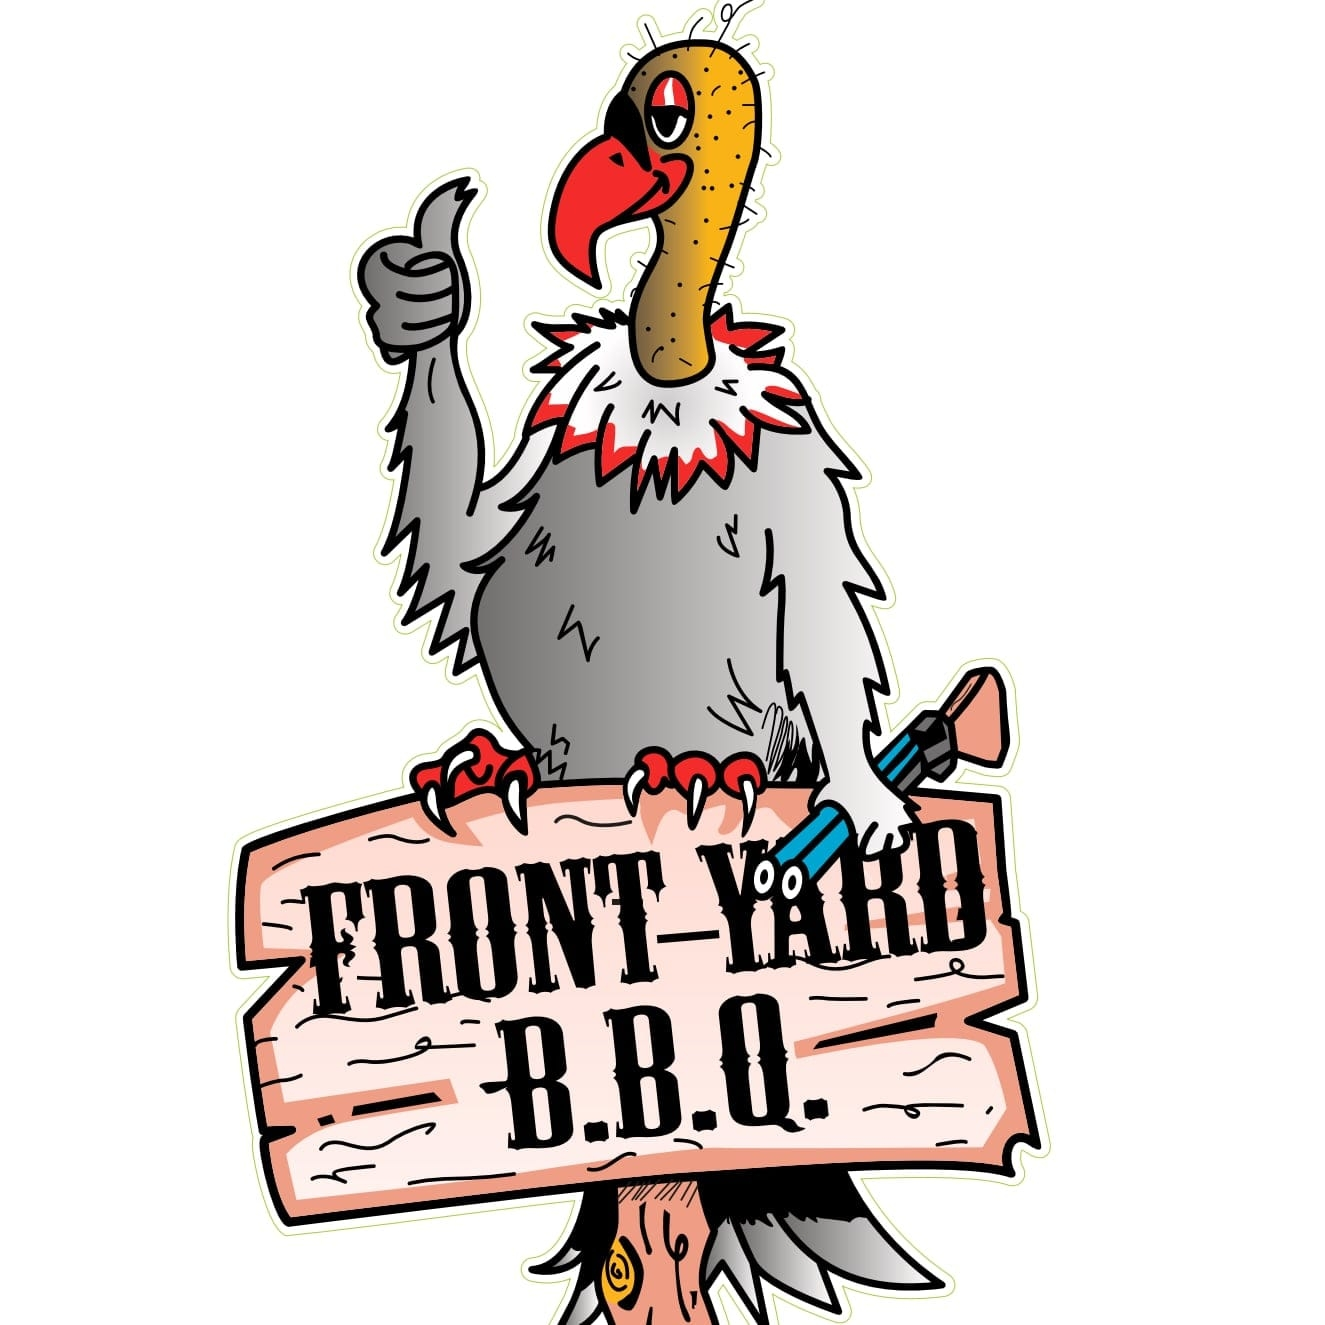 Front Yard Barbecue logo